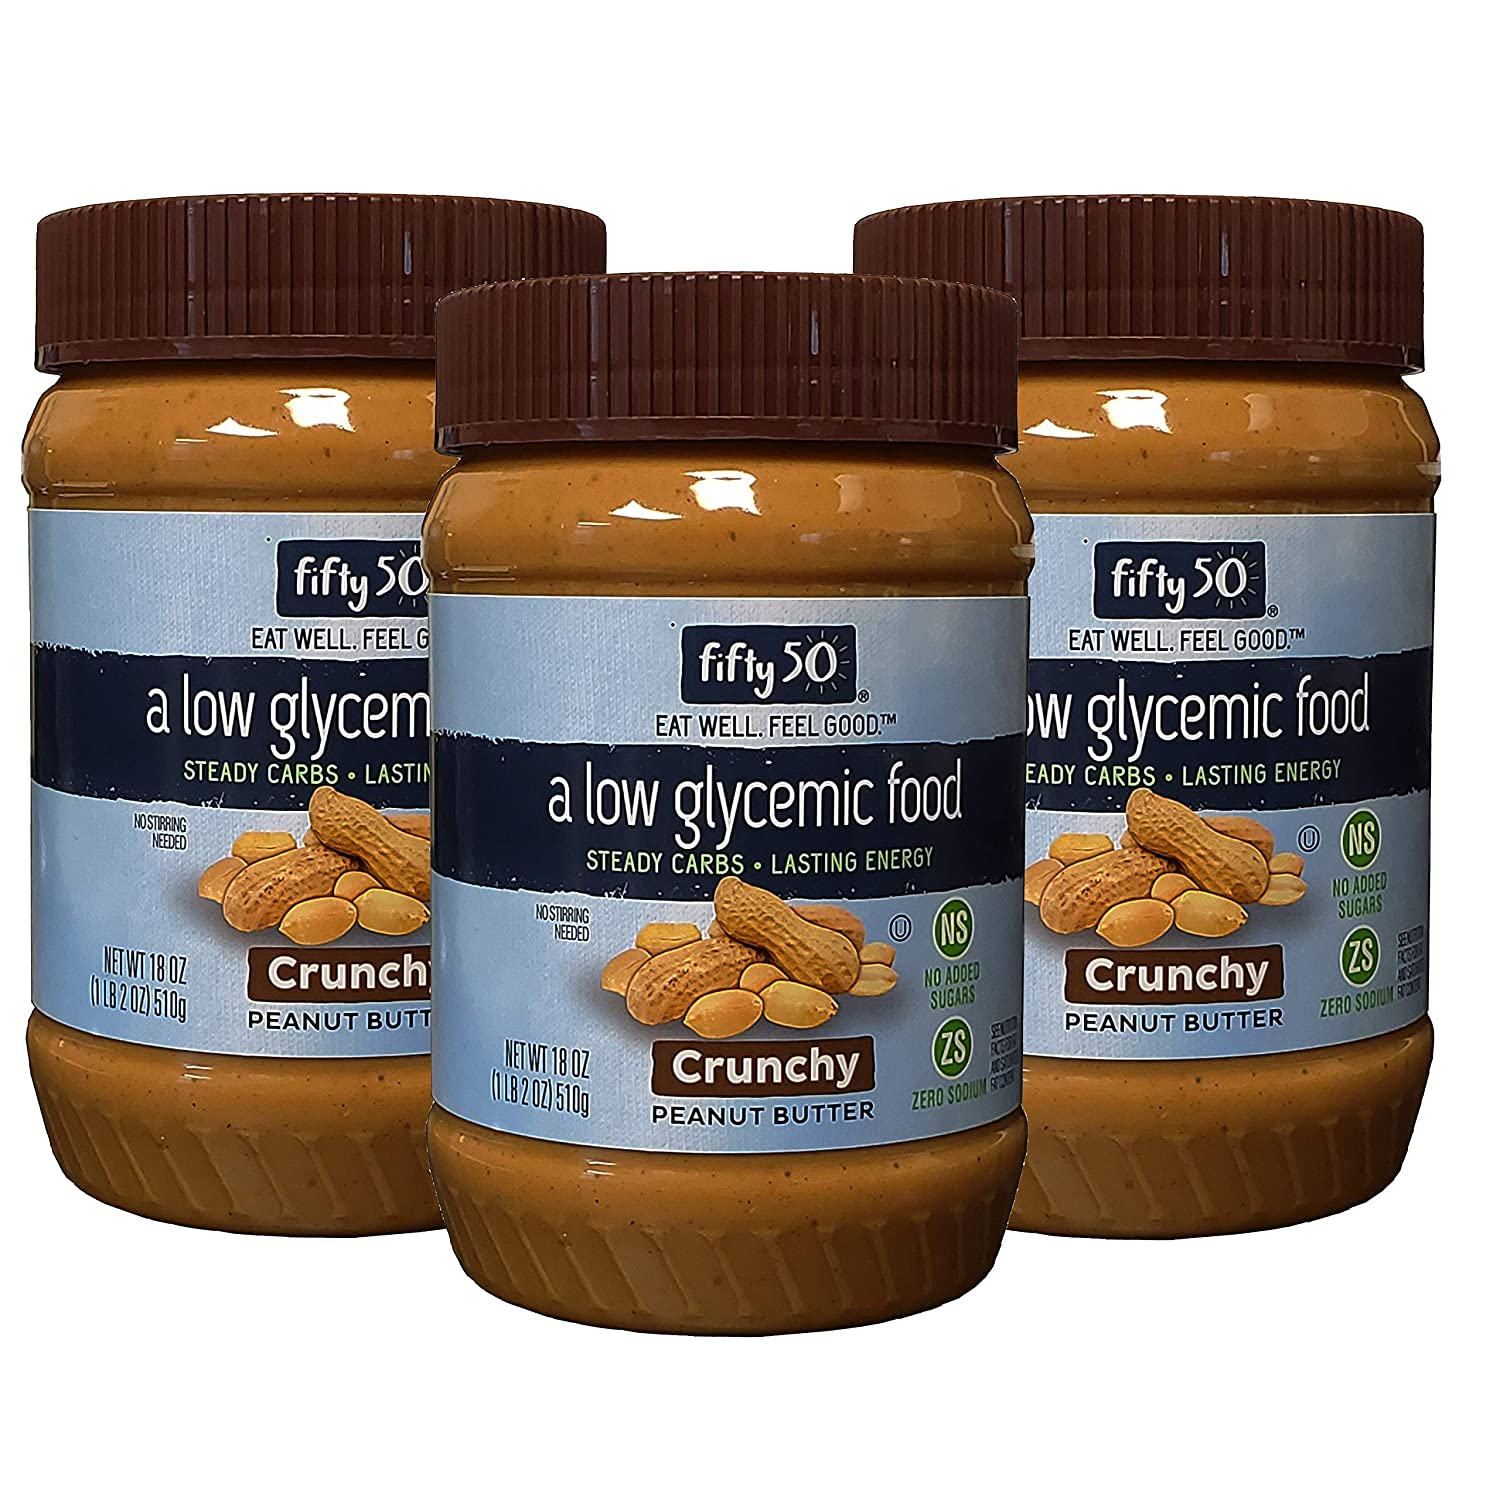 Fifty50 Foods Low Glycemic, No Added Sugar, Crunchy Peanut Butter, 18 Ounce (Pack of 3)